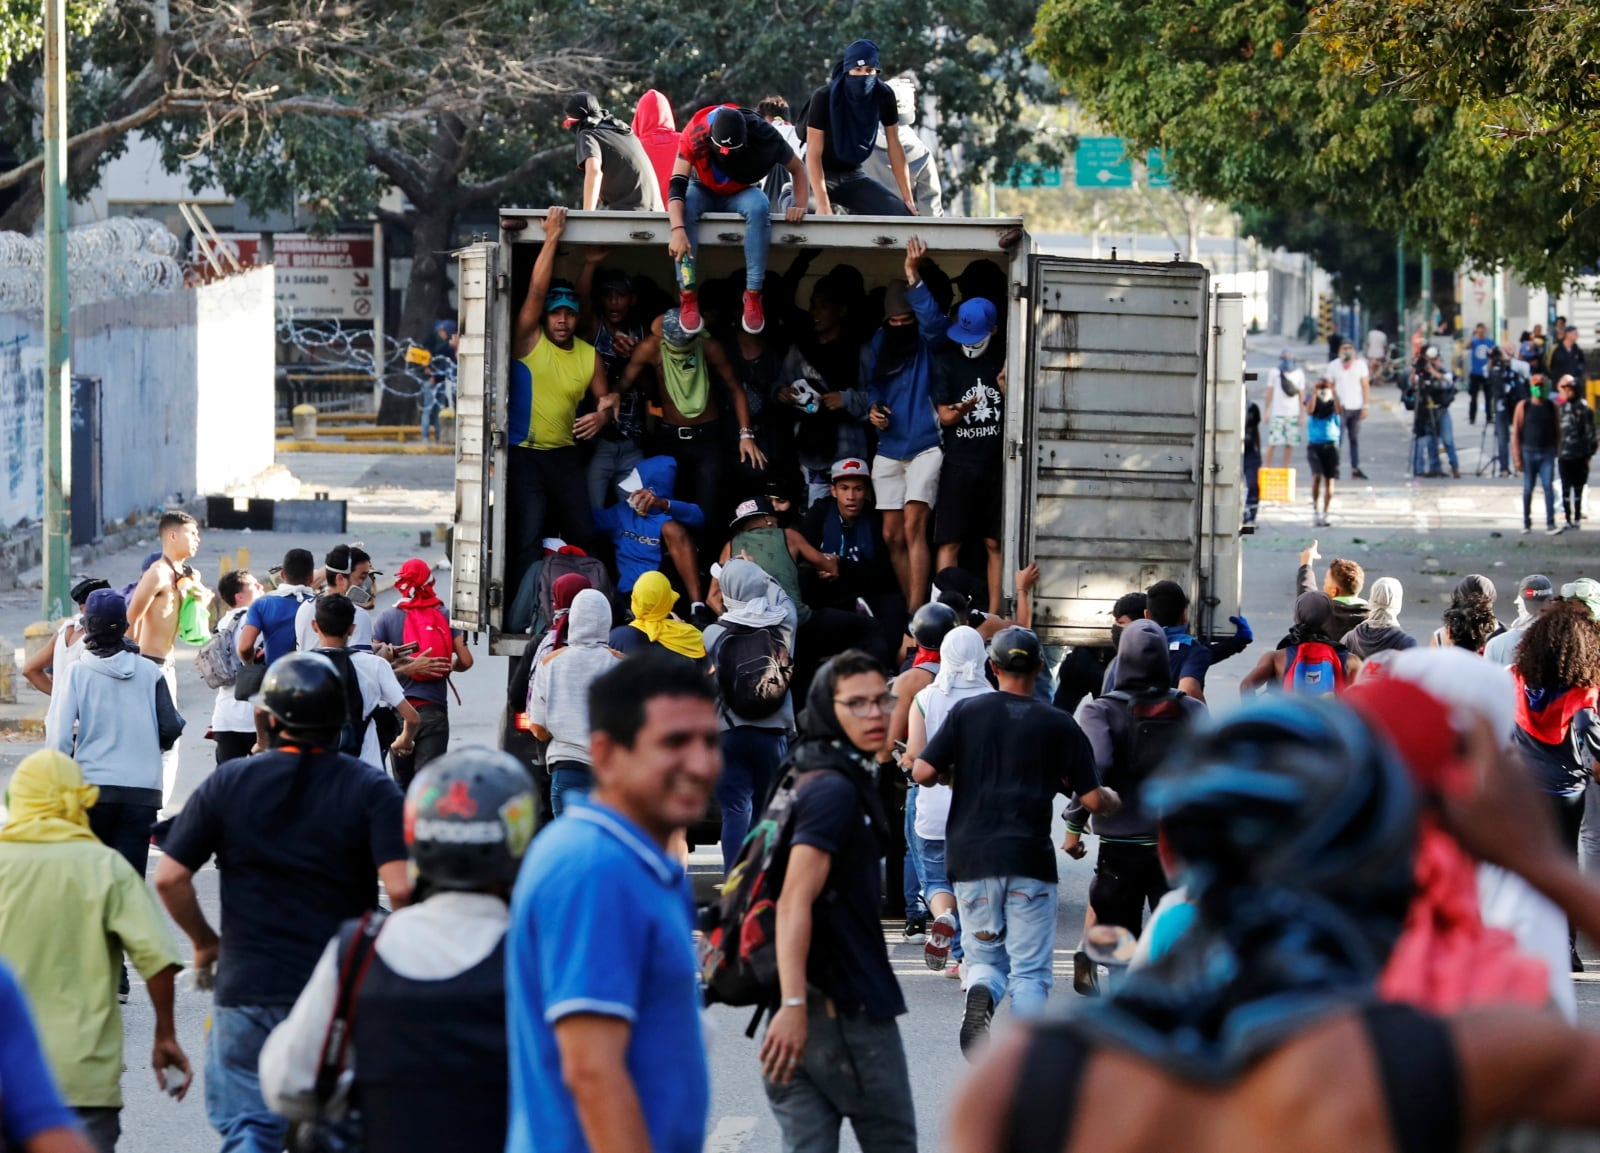 Demonstrators follow a truck during a protest of opposition supporters against Venezuelan President Nicolas Maduro's government in Caracas, Venezuela January 23, 2019. REUTERS/Carlos Garcia Rawlins